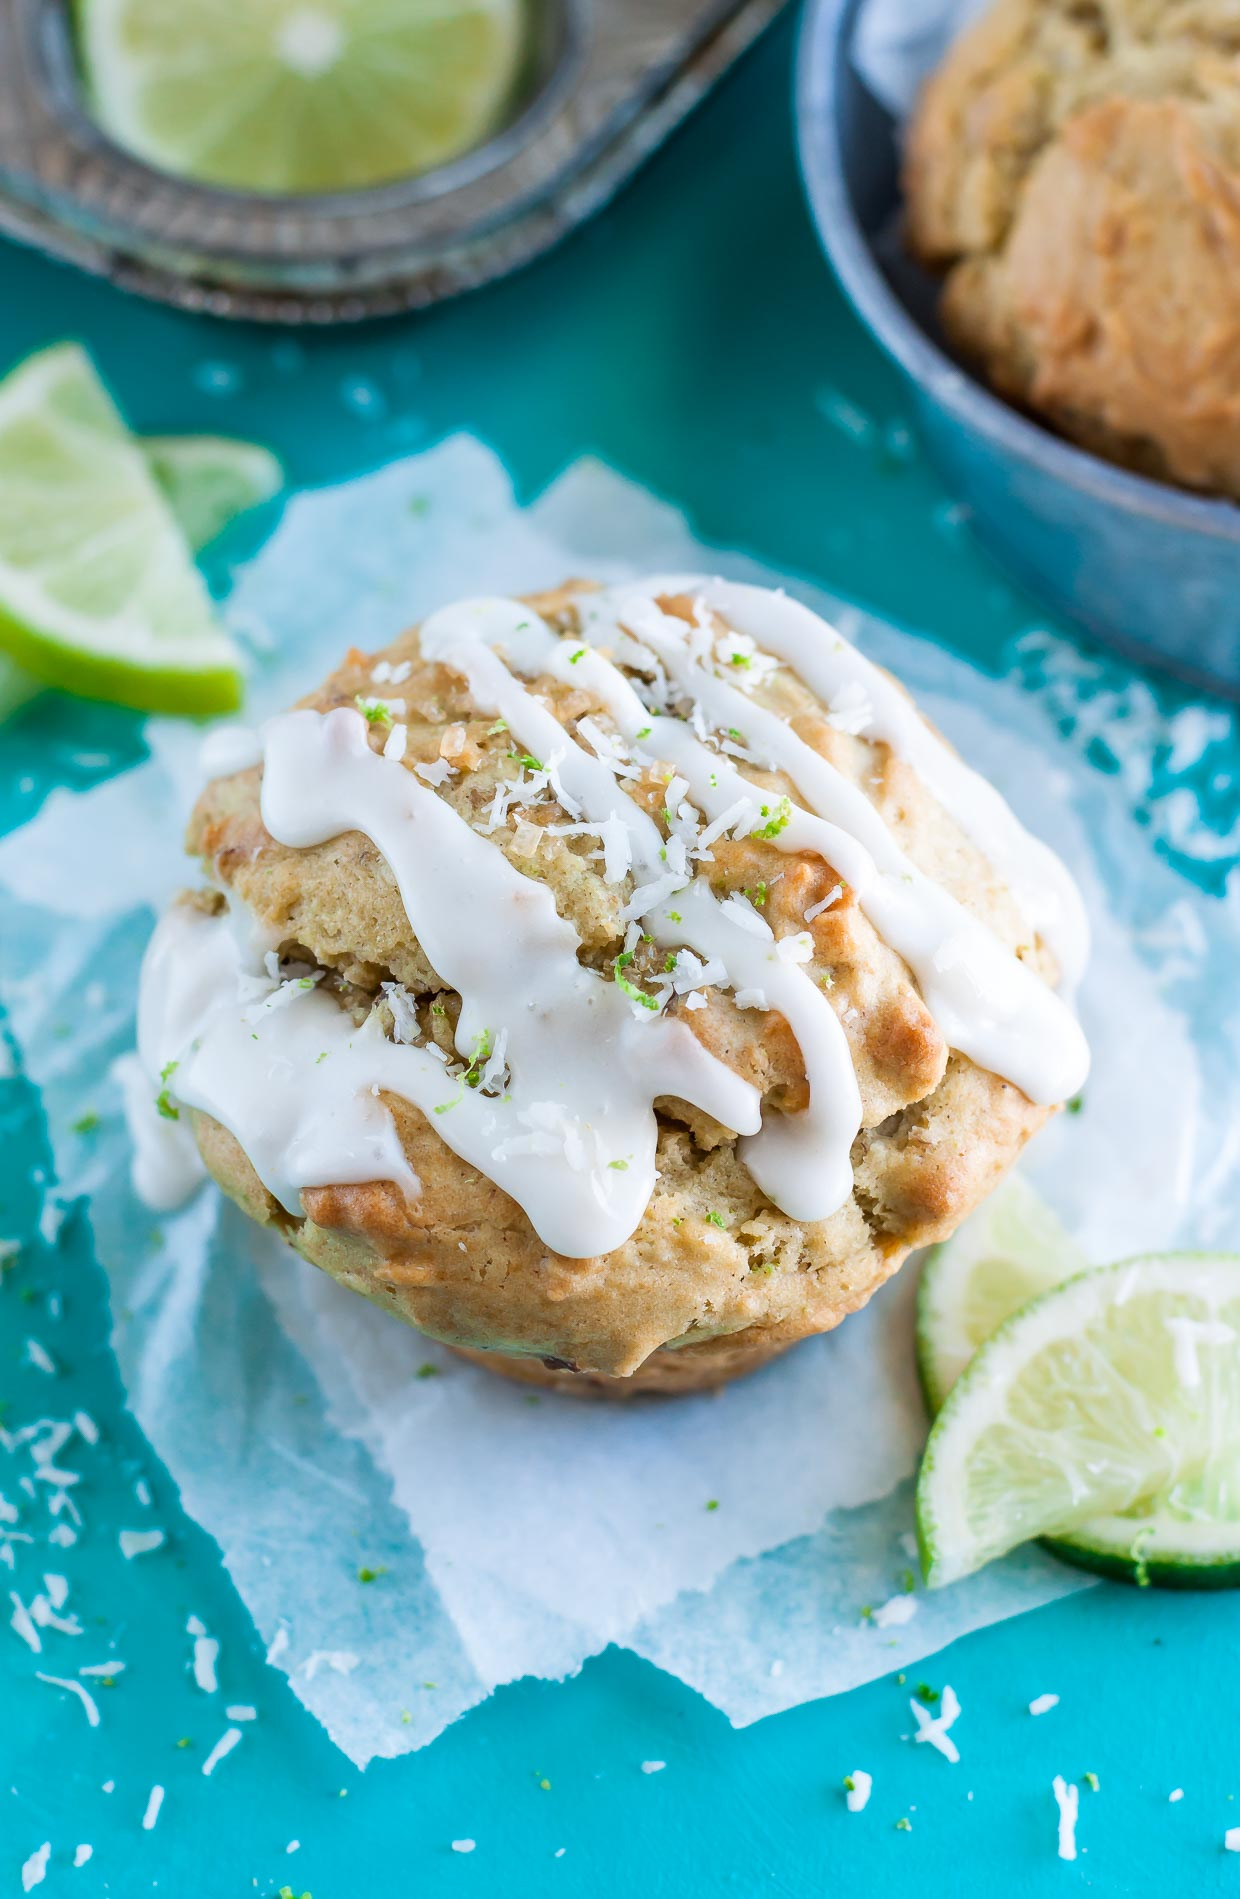 These bakery-style Coconut-Lime Avocado Muffins are fluffy, flavorful, and pack enough muffin top to make your jeans jealous!